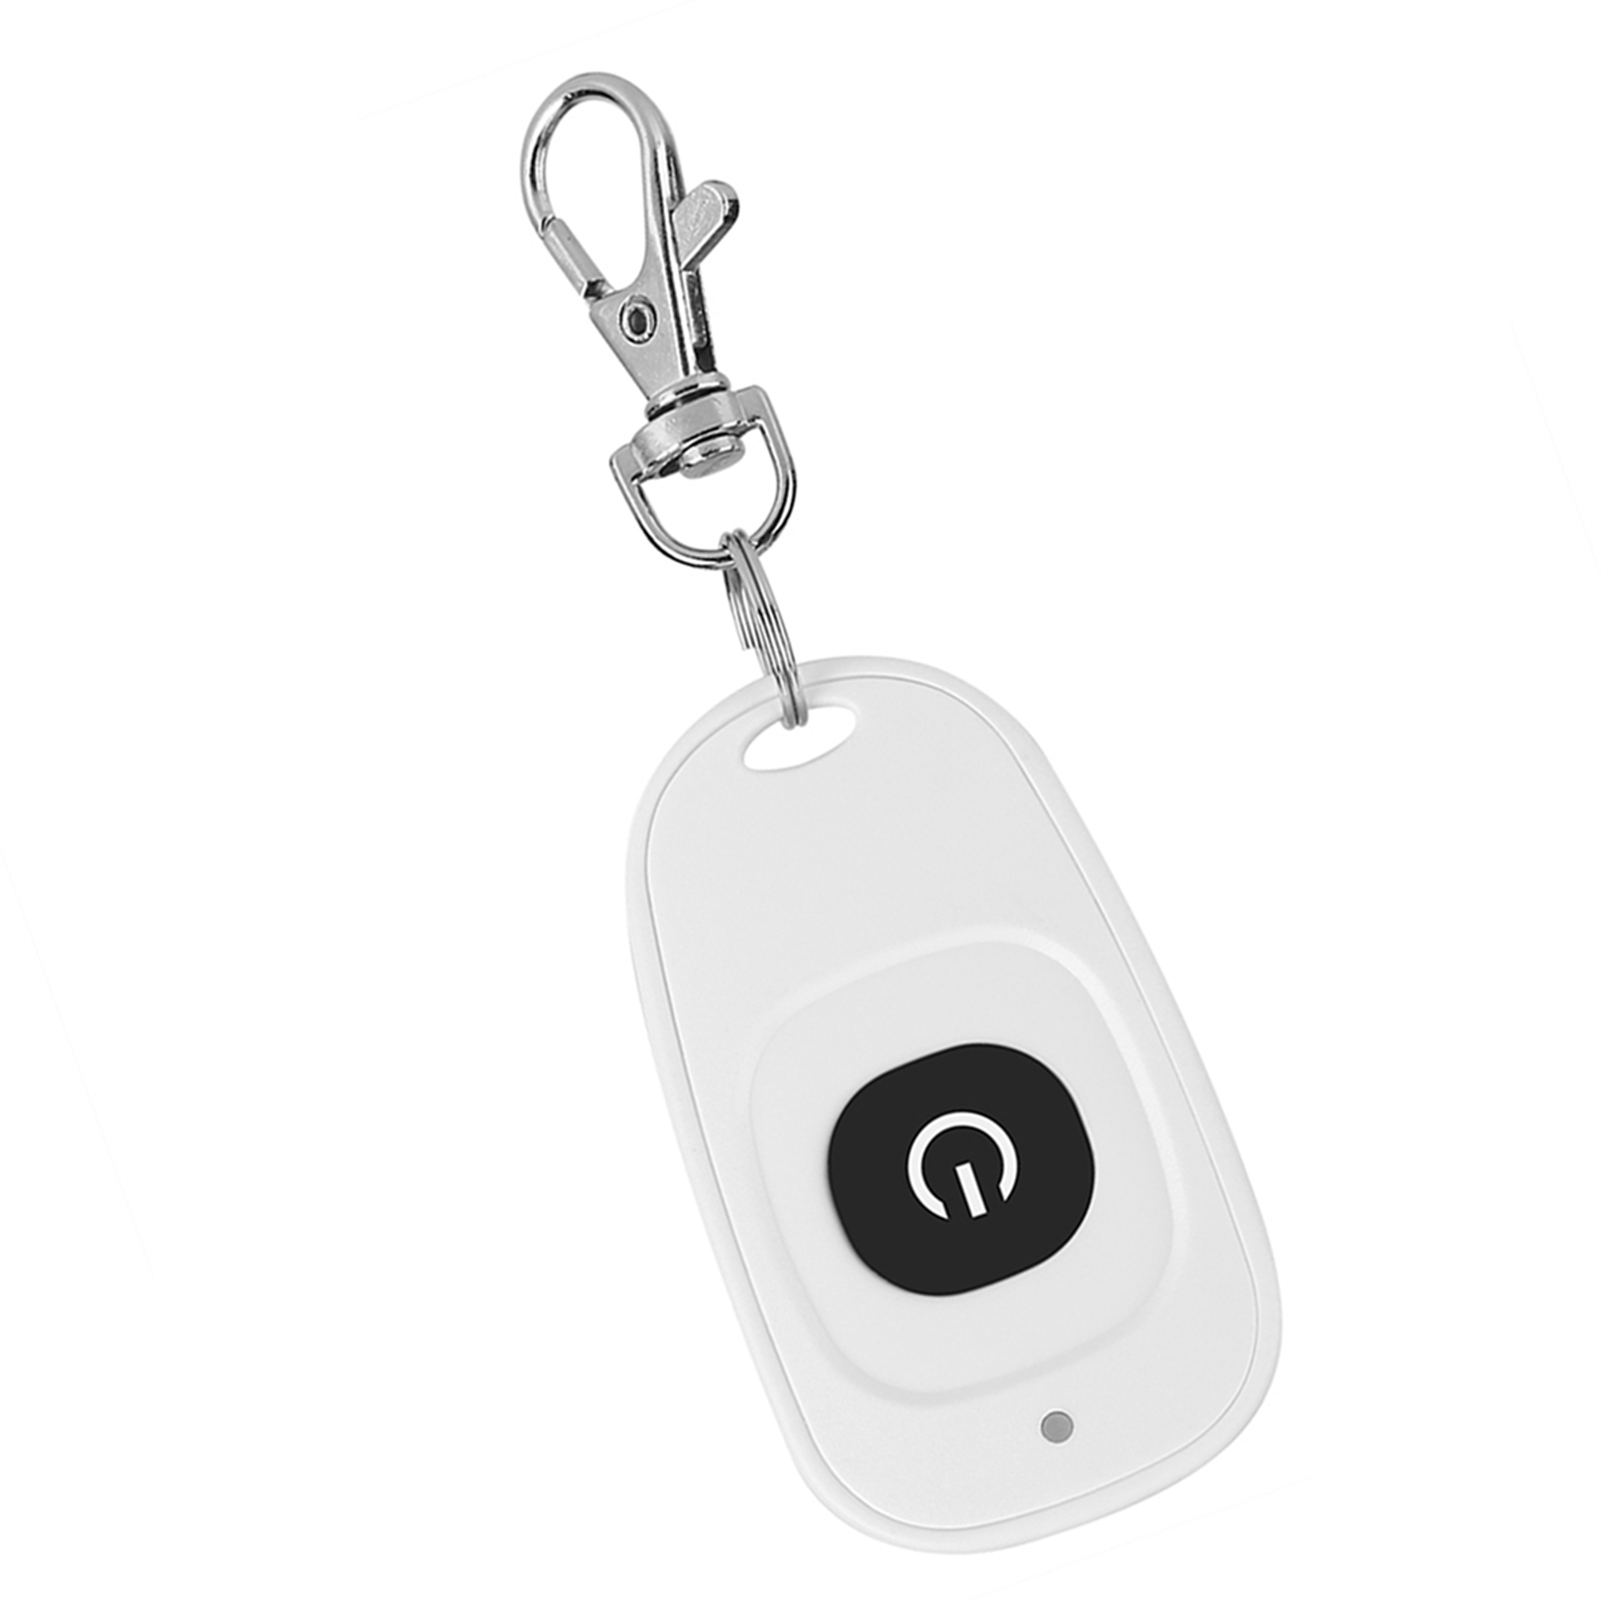 433MHz-EV1527-RF-Wireless-Transmitter-Garage-Door-1-4-Channel-Key-Remote-Control miniature 16